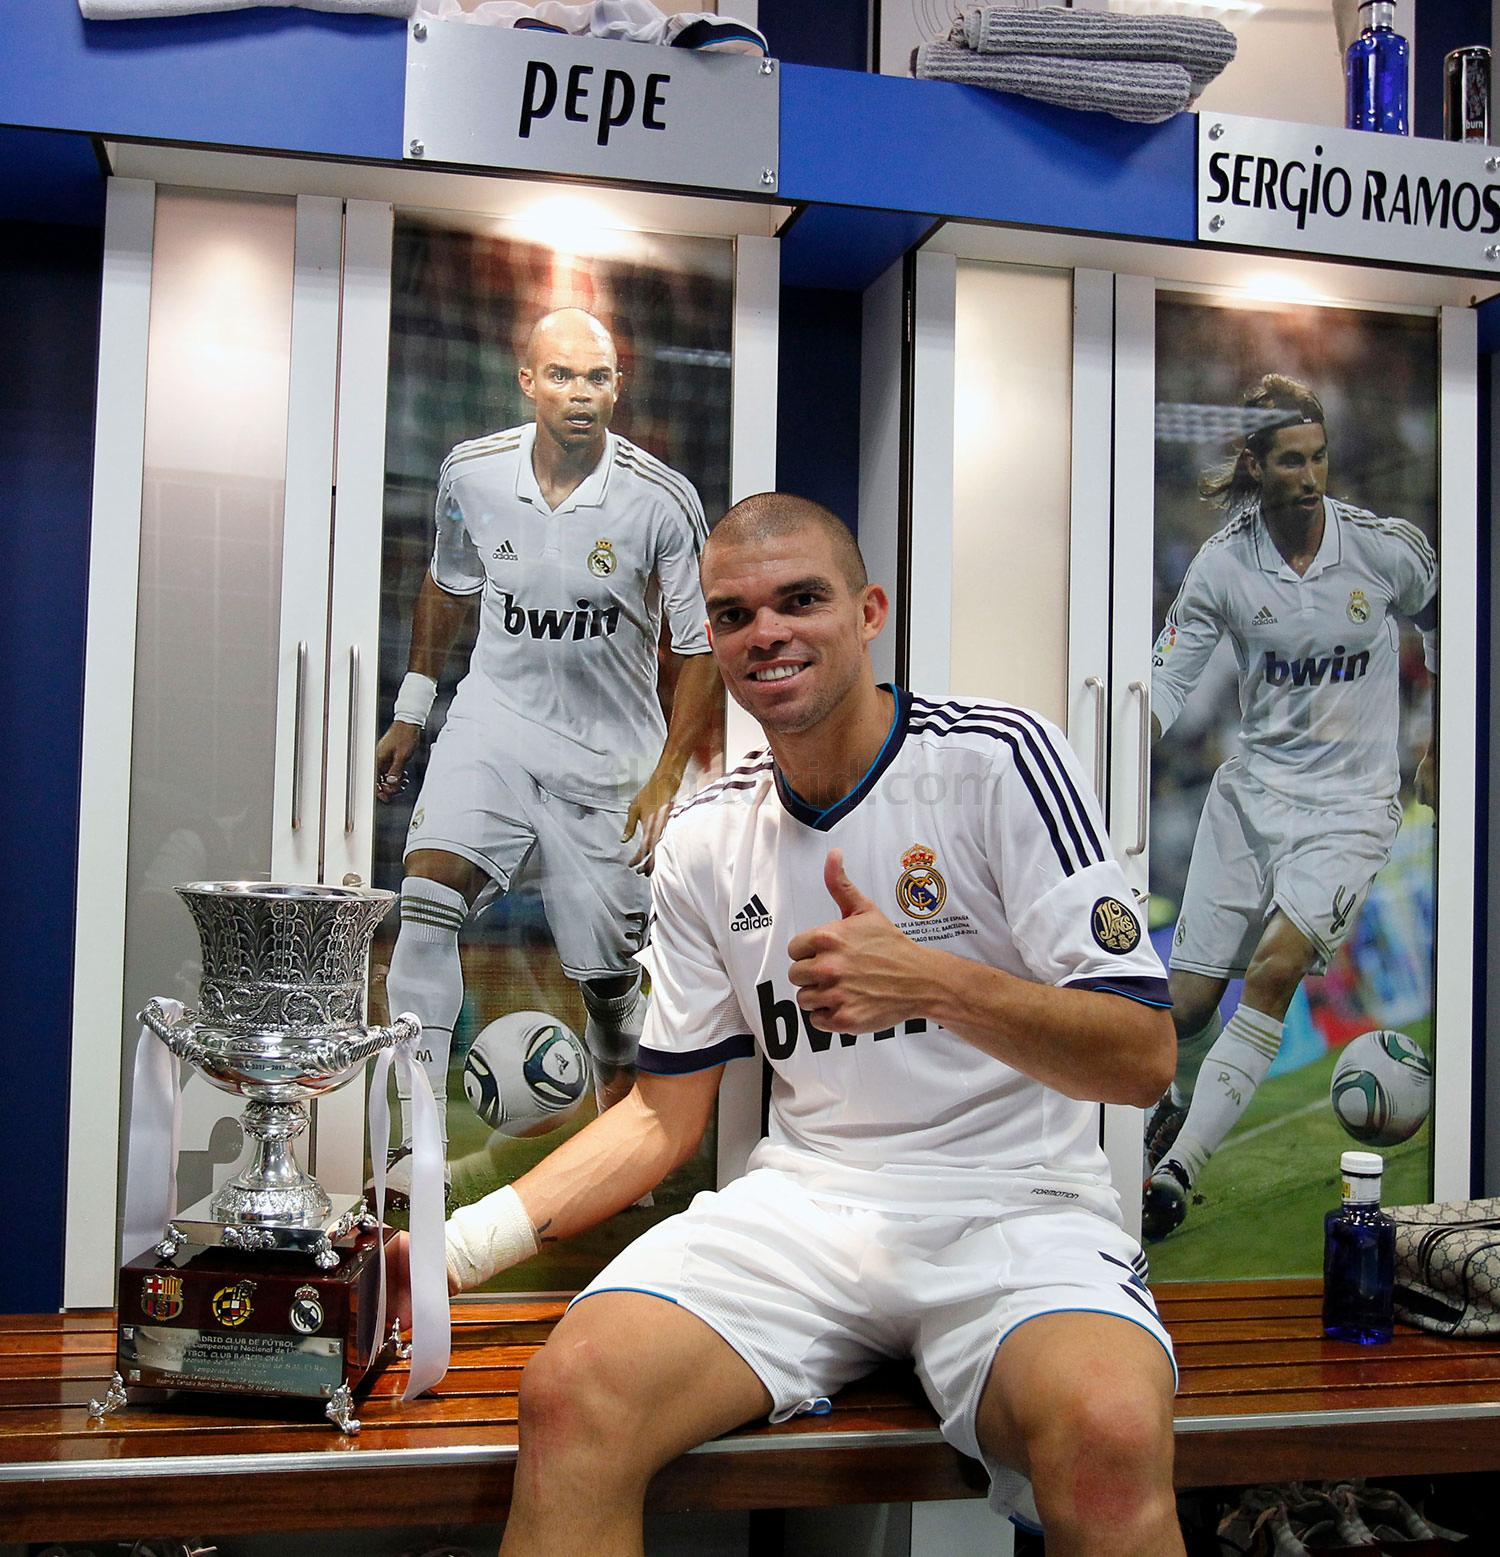 Real Madrid - Pepe inicia su décima temporada en el Real Madrid - 12-08-2016